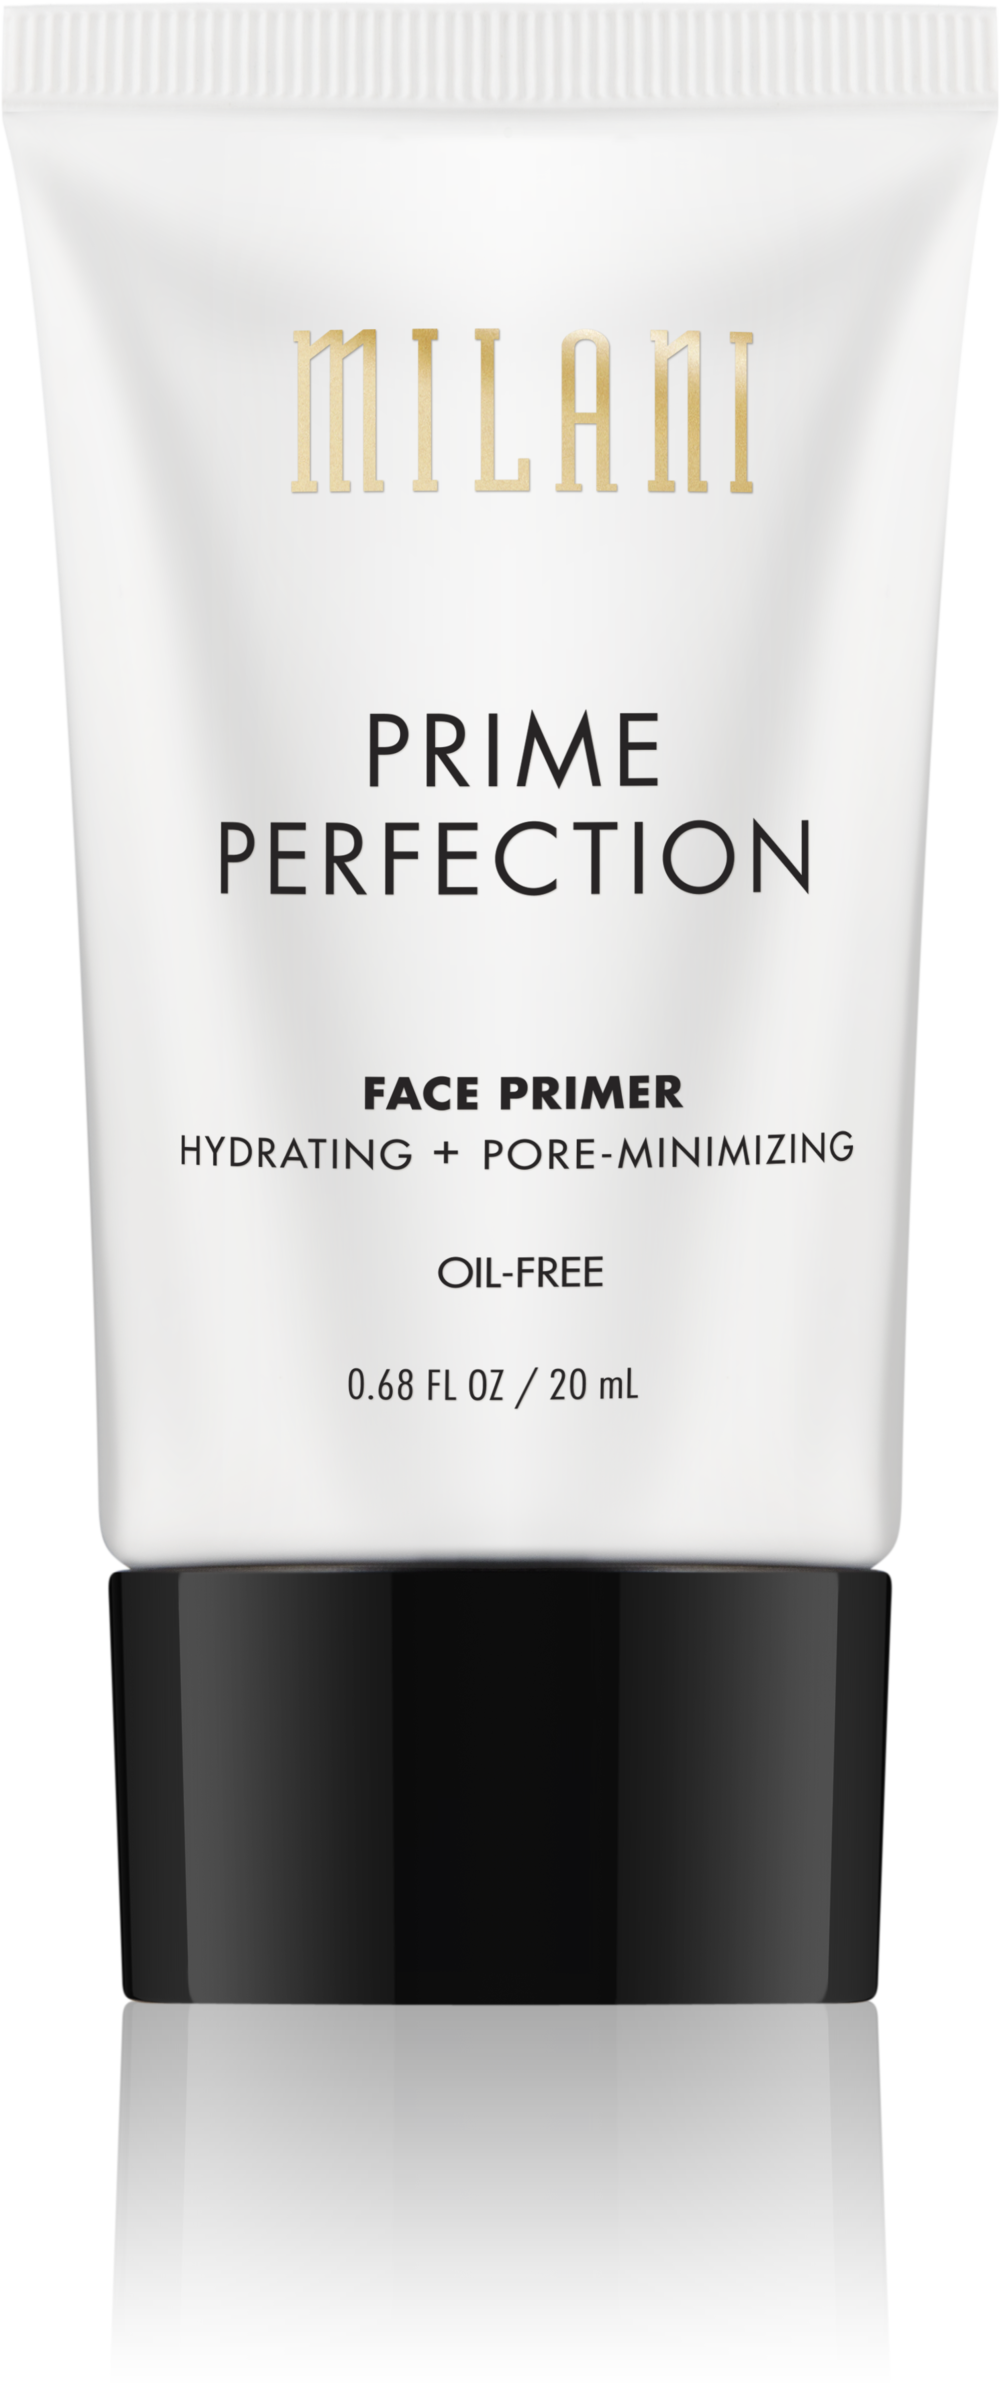 Prime Perfection Hydrating + Pore-Minimizing Face Primer from Milani